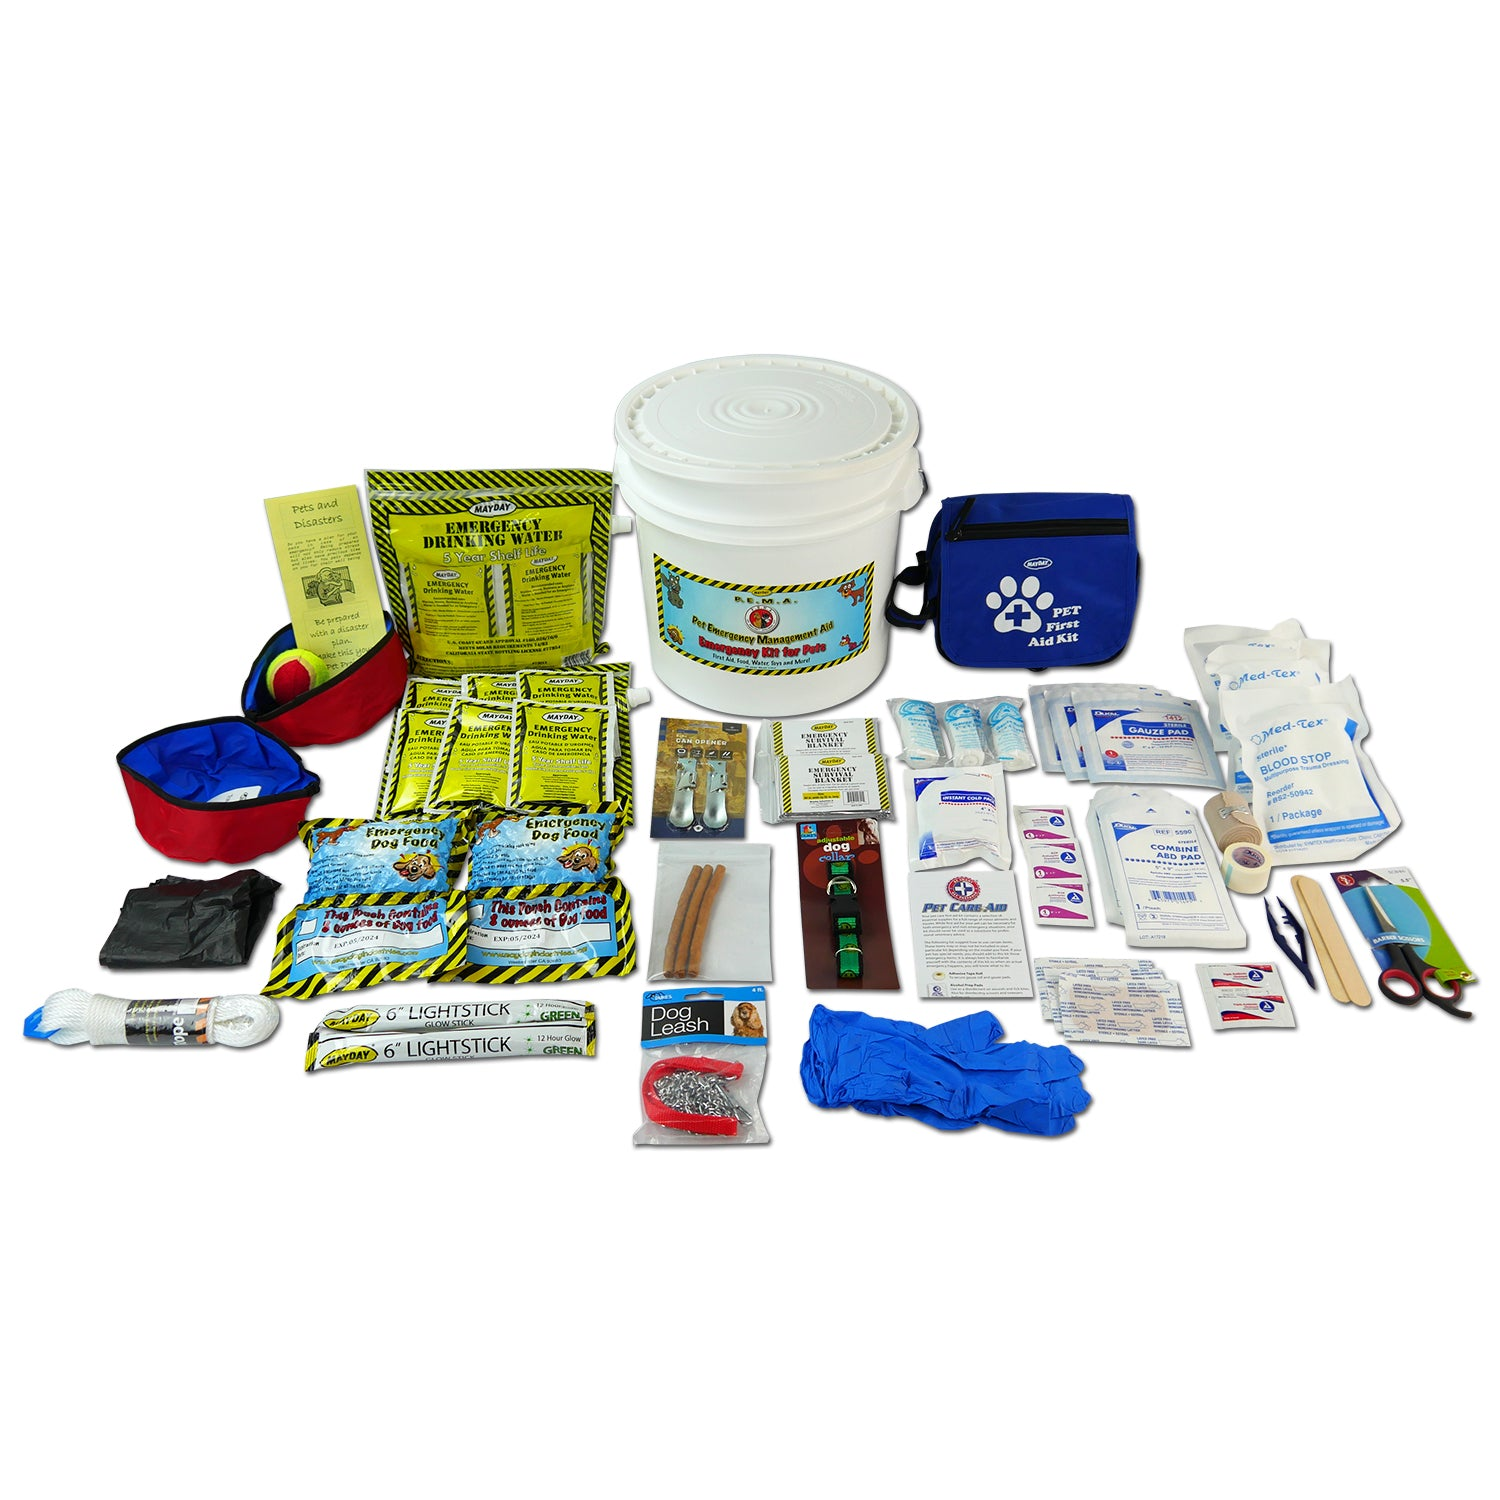 EMERGENCY DOG KIT WITH FIRST AID, FOOD, WATER, TOYS AND MORE 5 YEAR SHELF LIFE